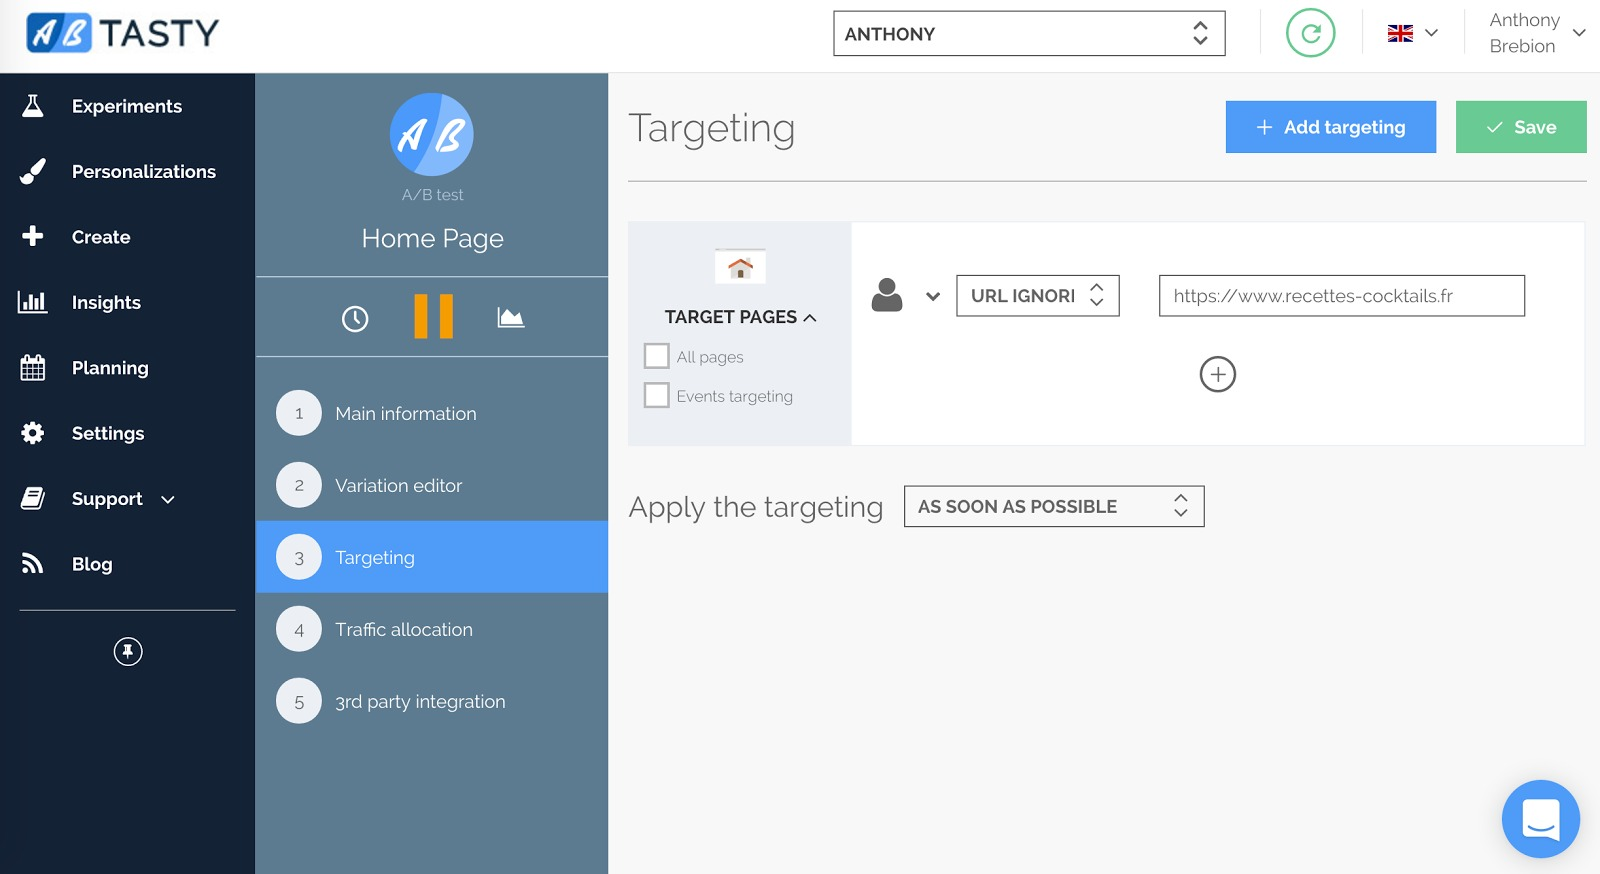 18 Top A/B Testing Tools Reviewed by CRO Experts